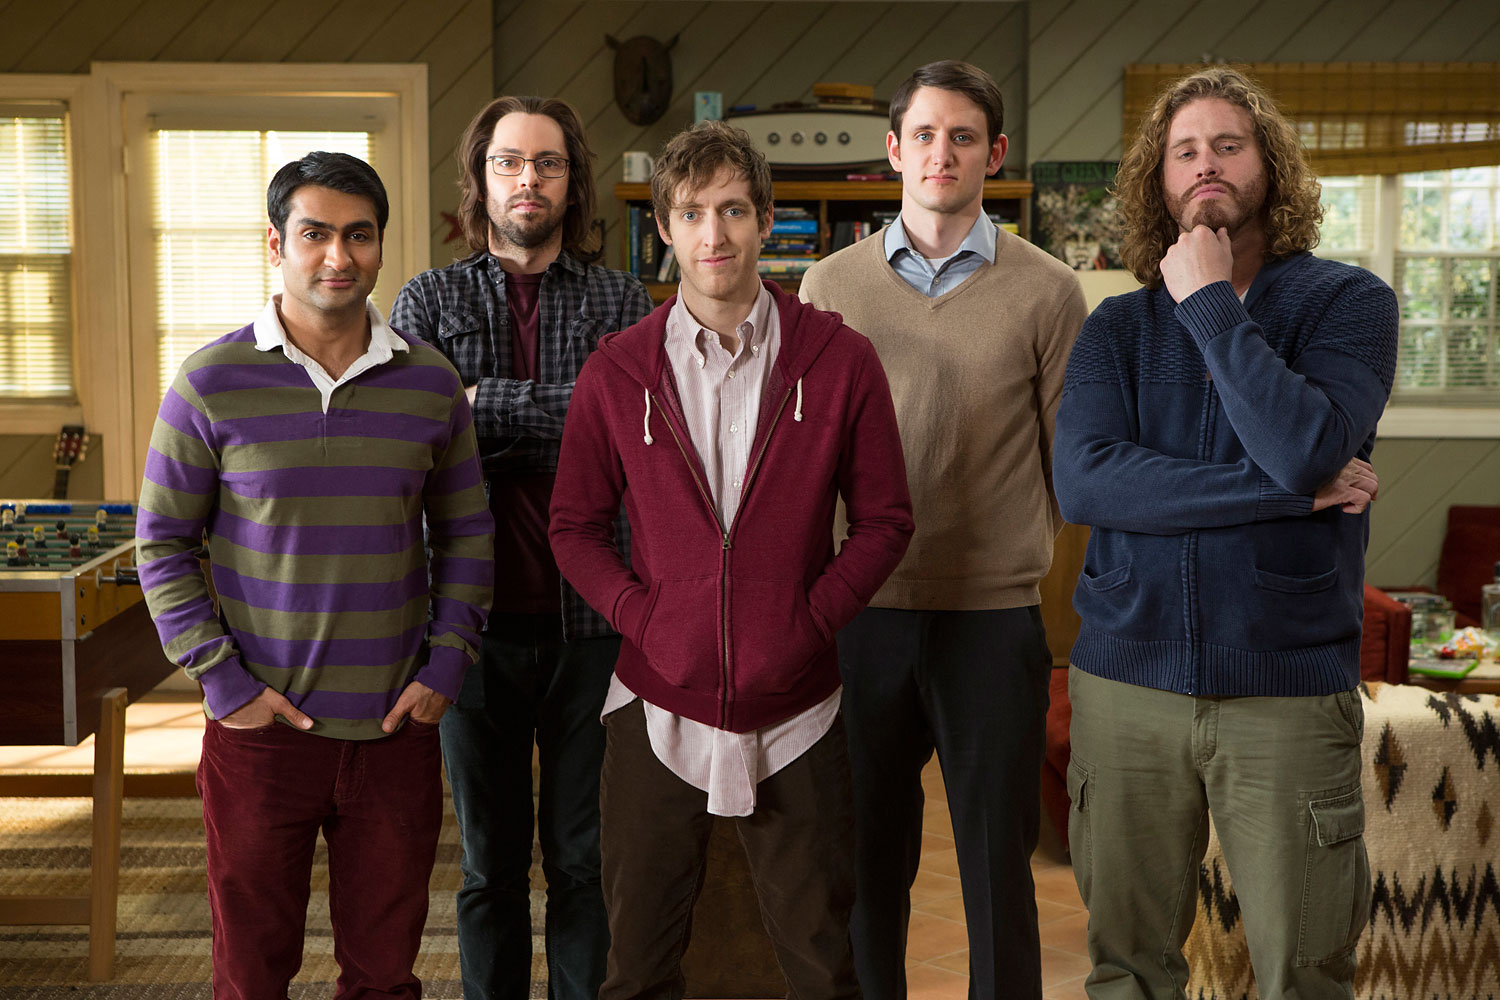 Episode 1 of HBO's Silicon Valley